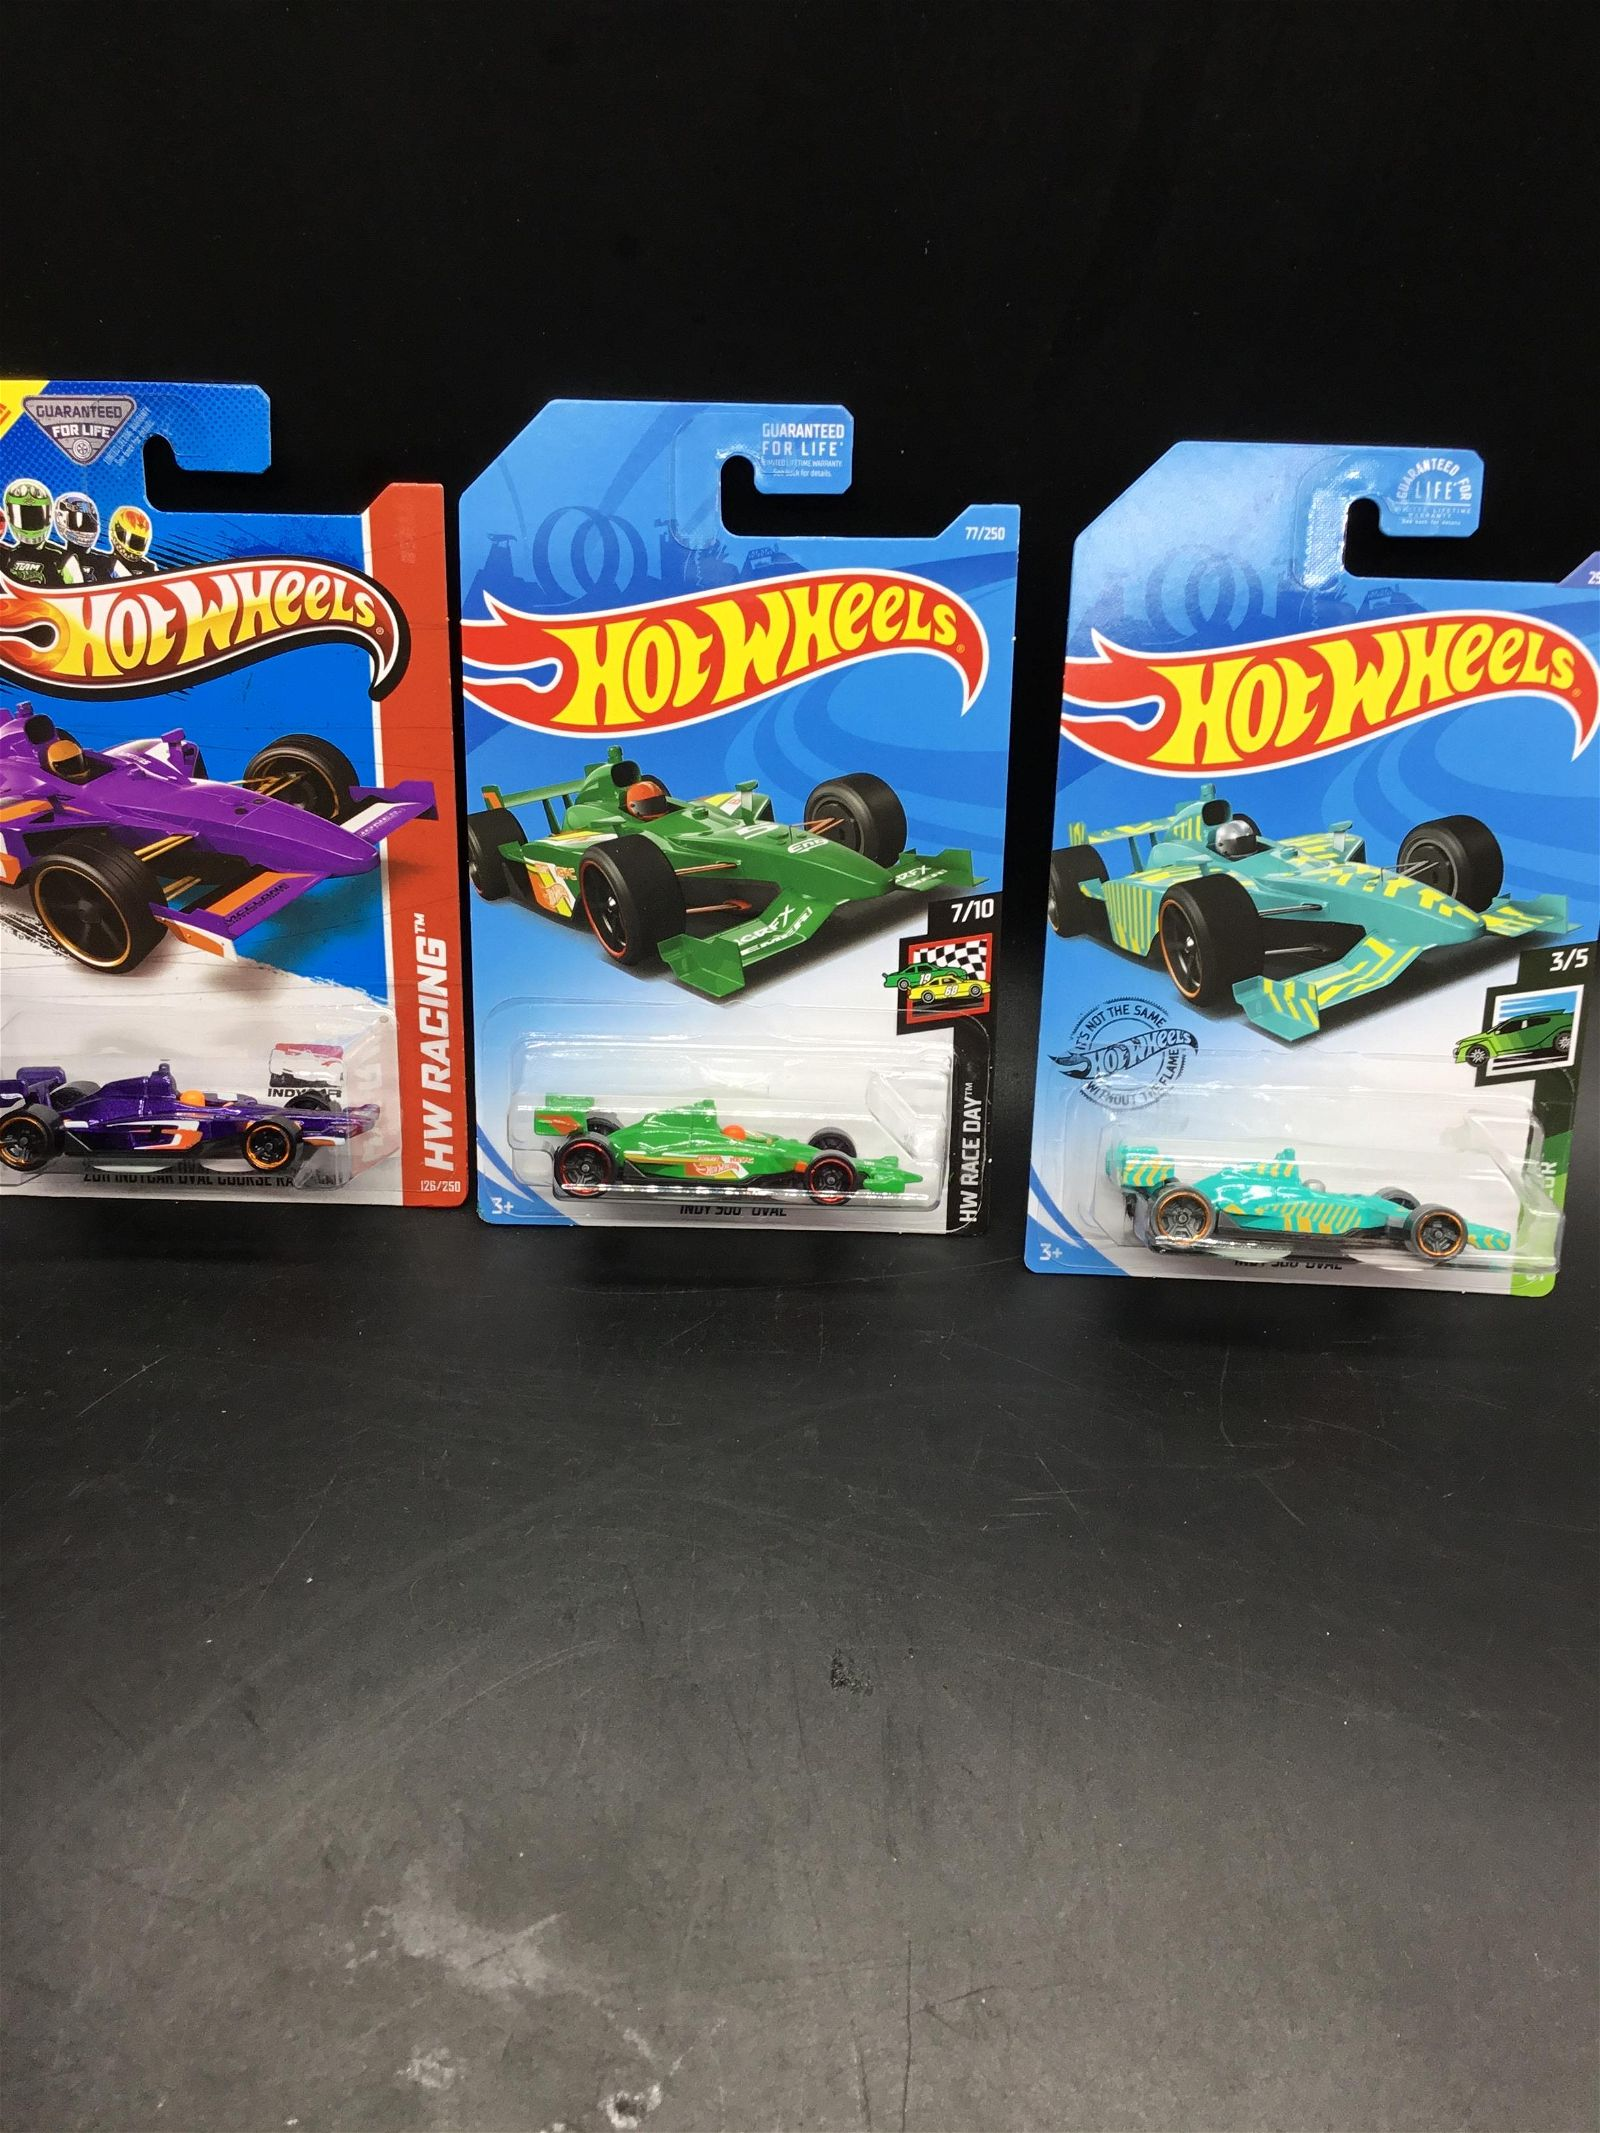 Set of 3 Hot Wheels Indy Oval cars